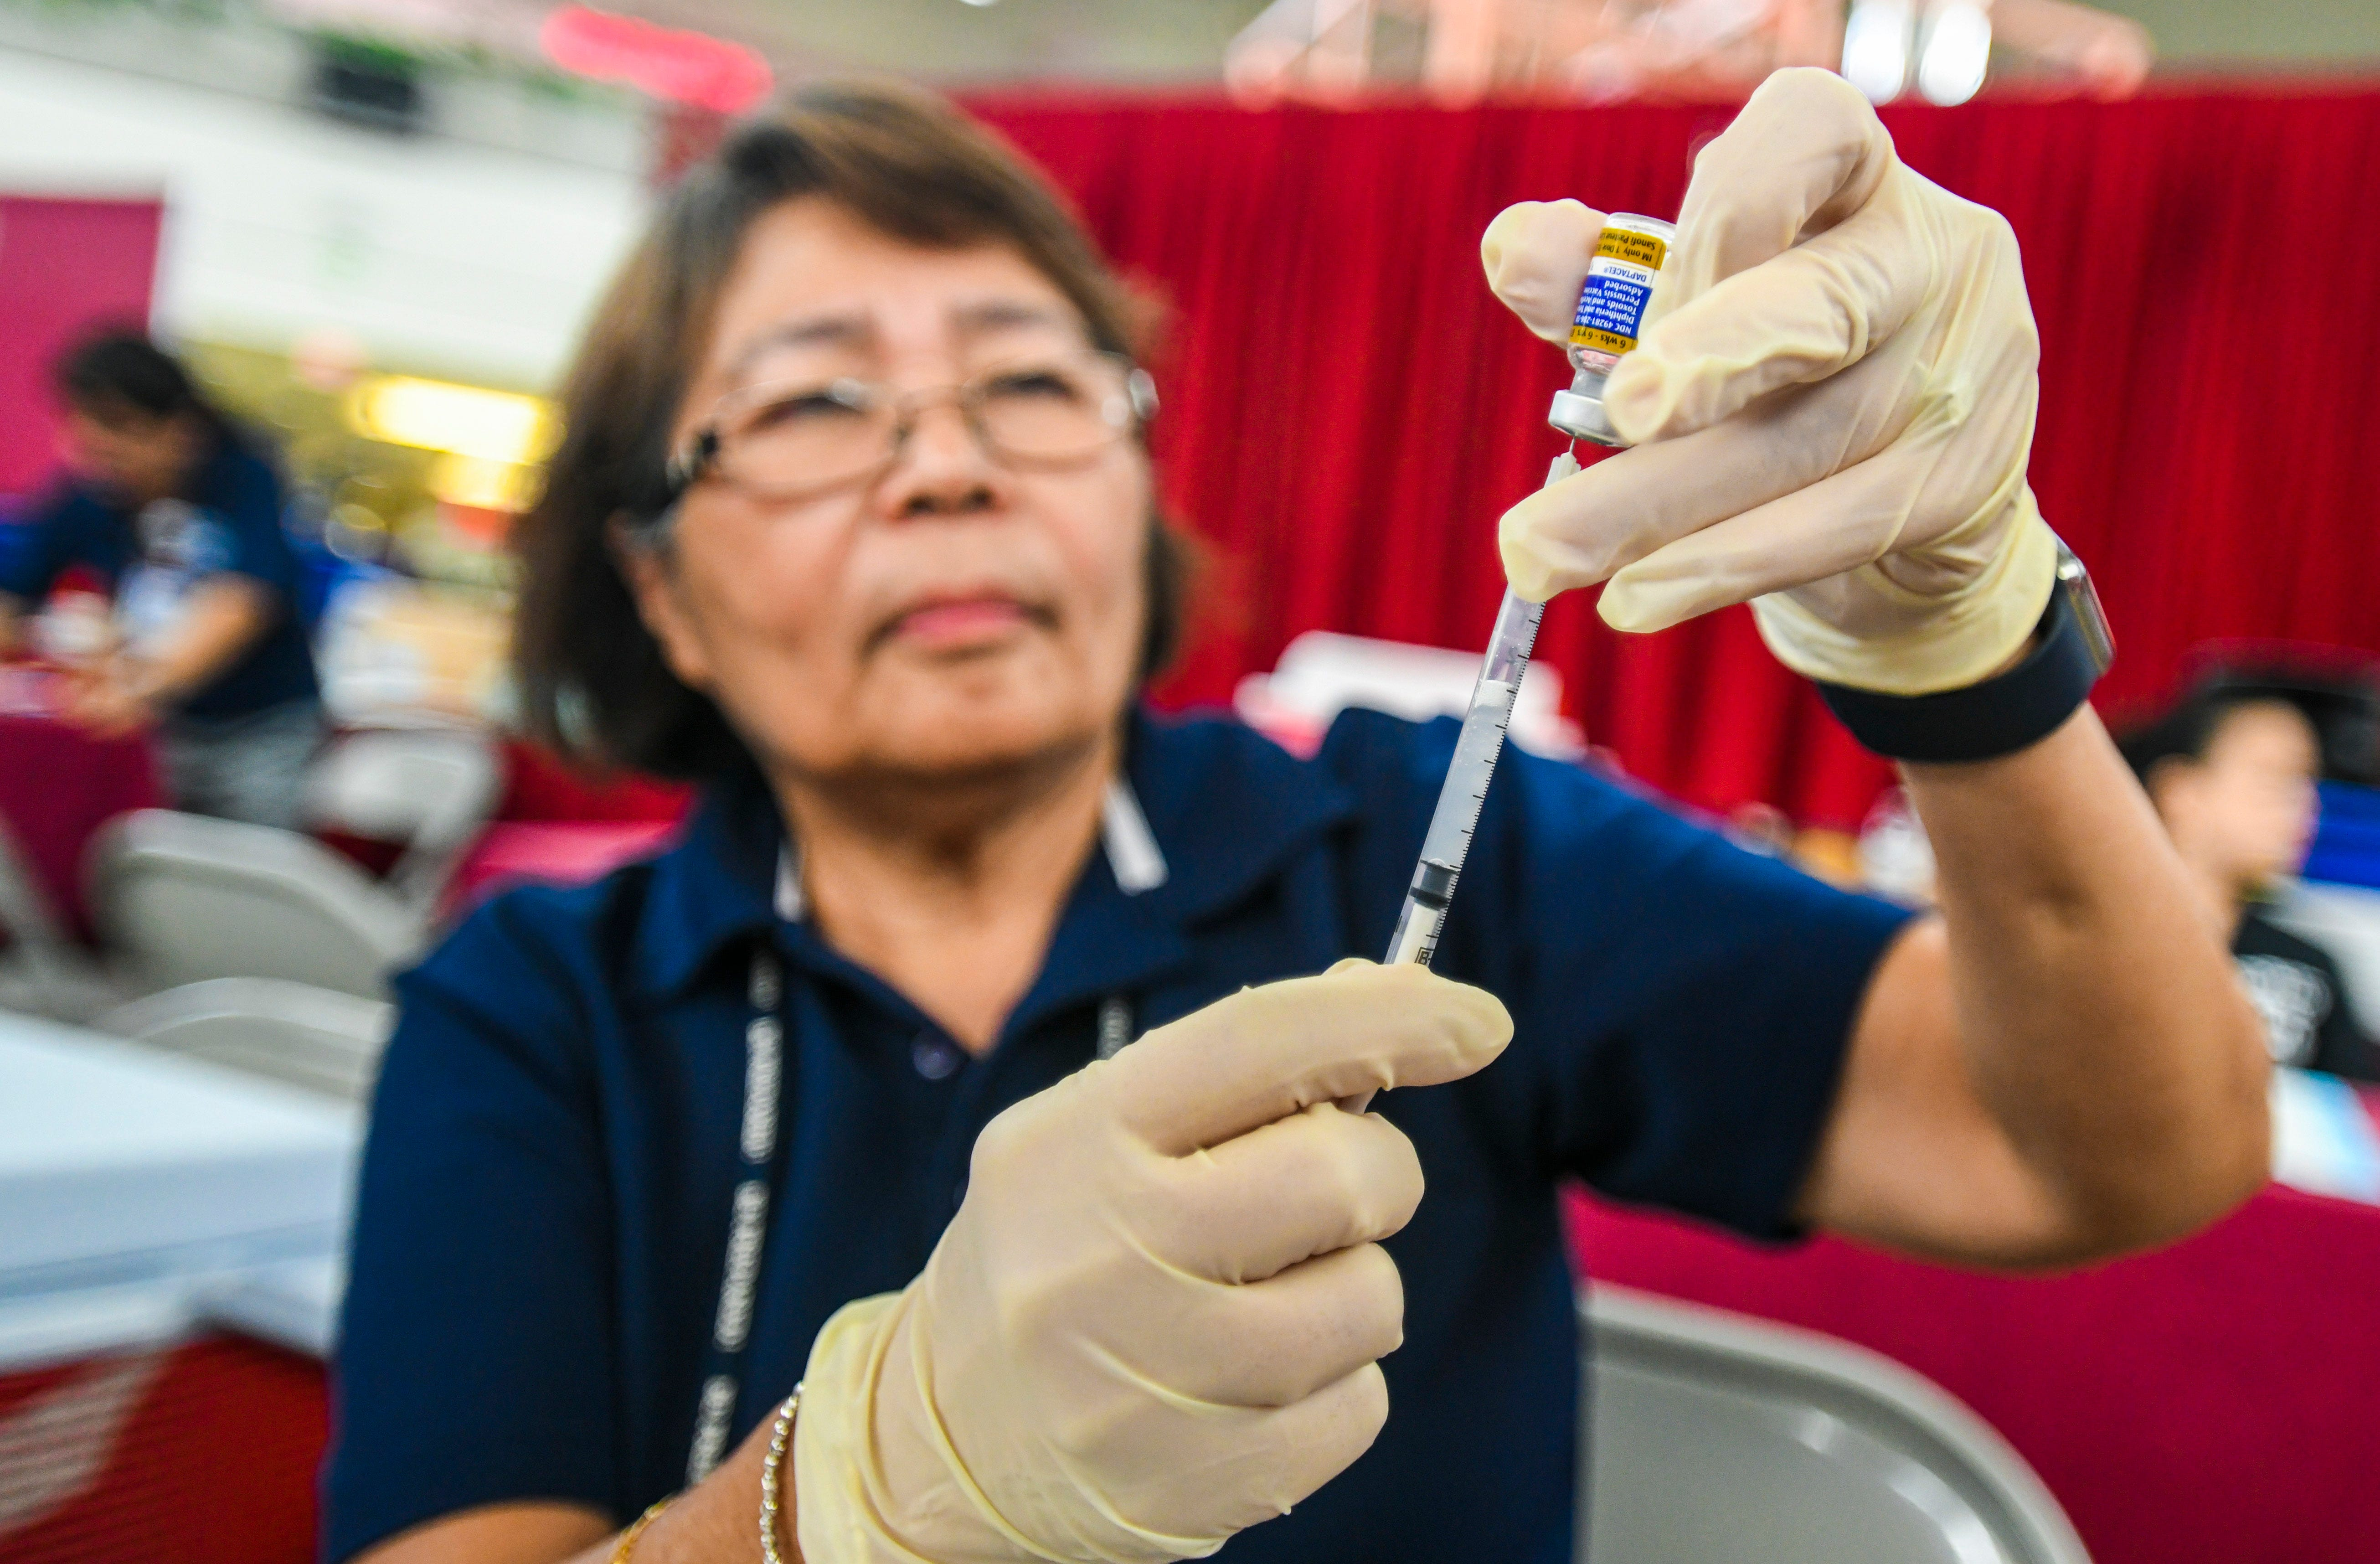 Department of Public Health and Social Services nurse Eva Losbanes draws vaccine from a vial as she prepares loaded syringes at the agency's Back To School immunization clinic at the Micronesia Mall in this July 27 file photo.